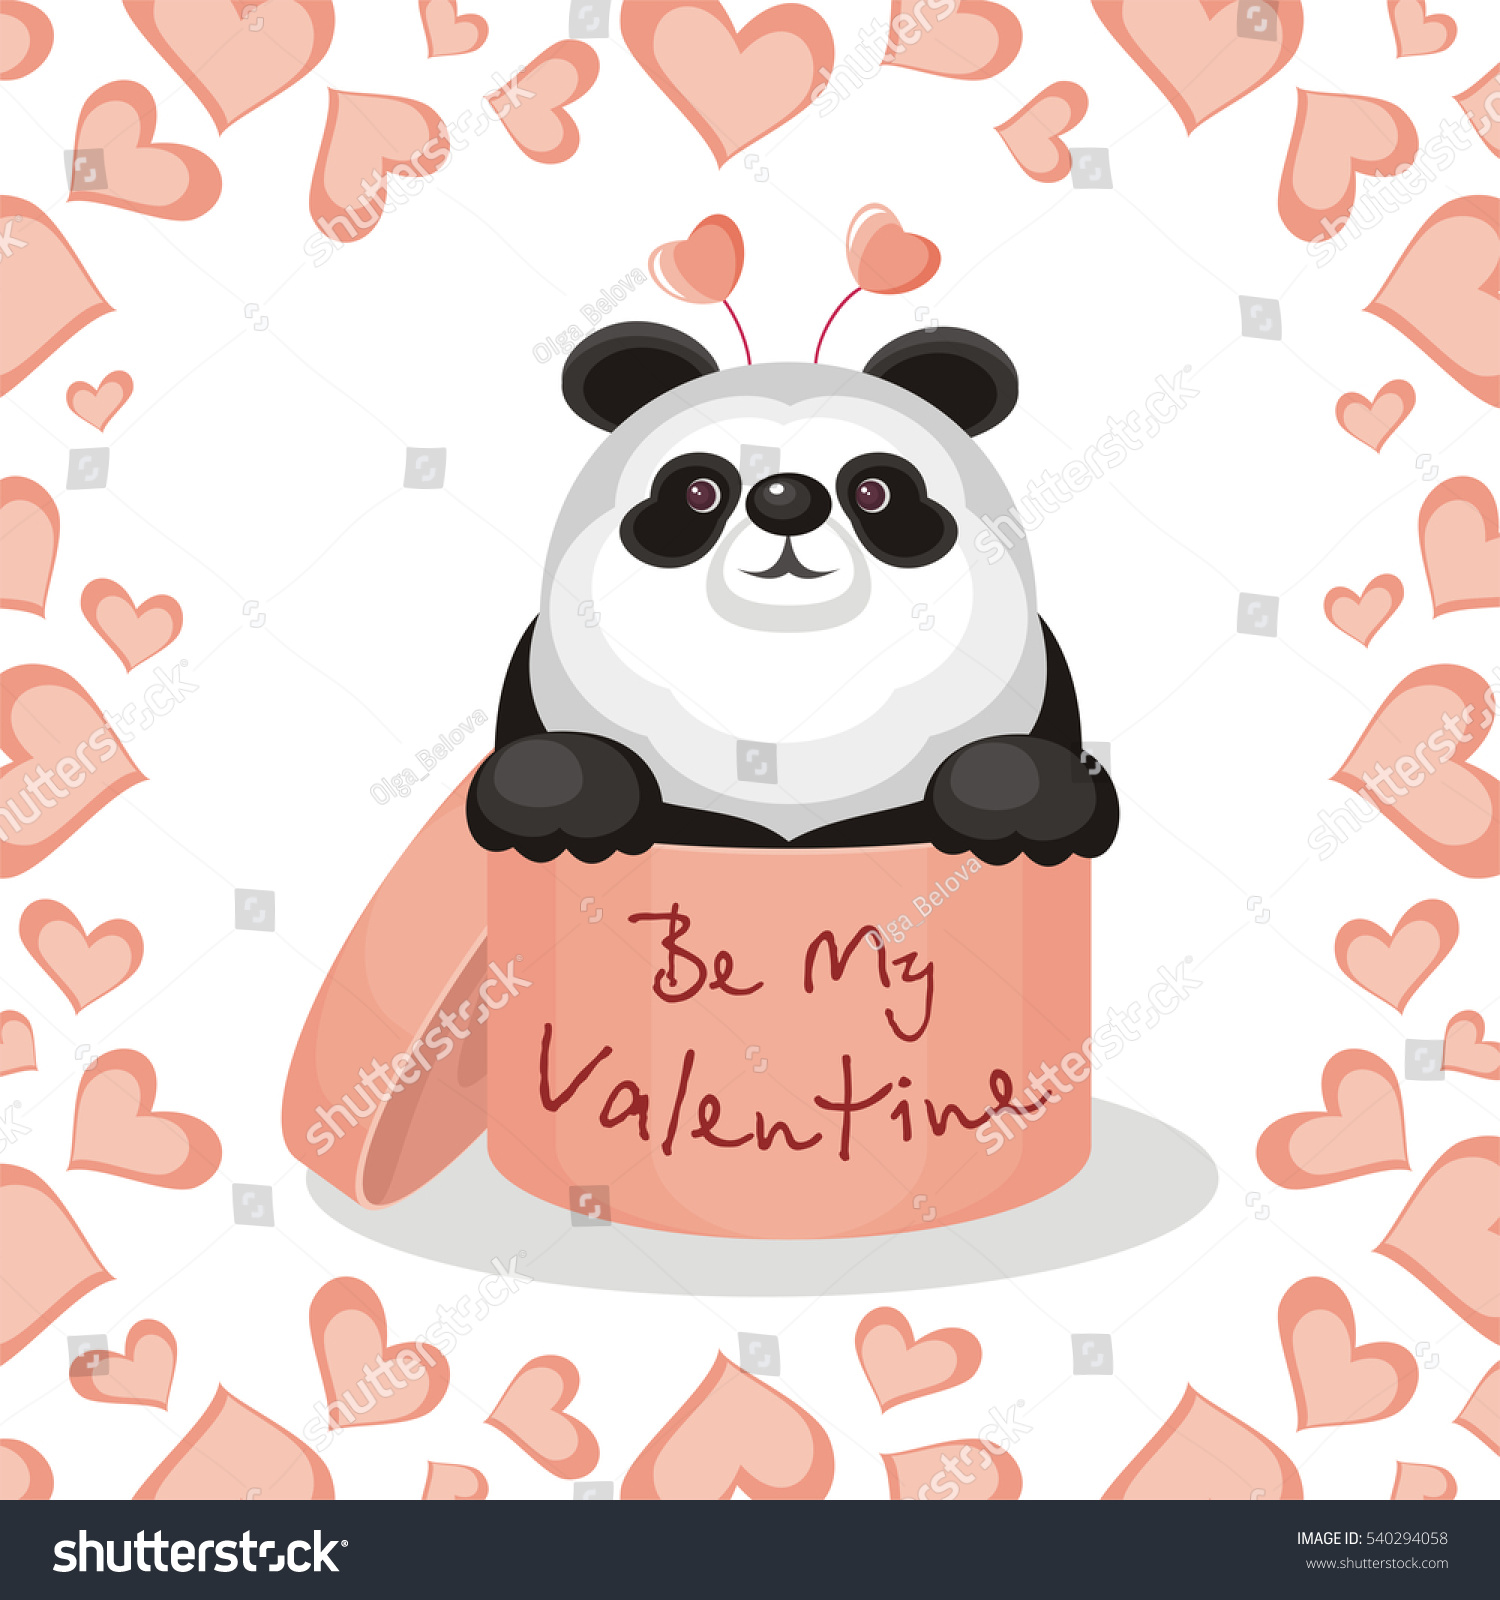 Valentines Day Greeting Card. Funny Panda Sitting In A Gift Box With The  Inscription